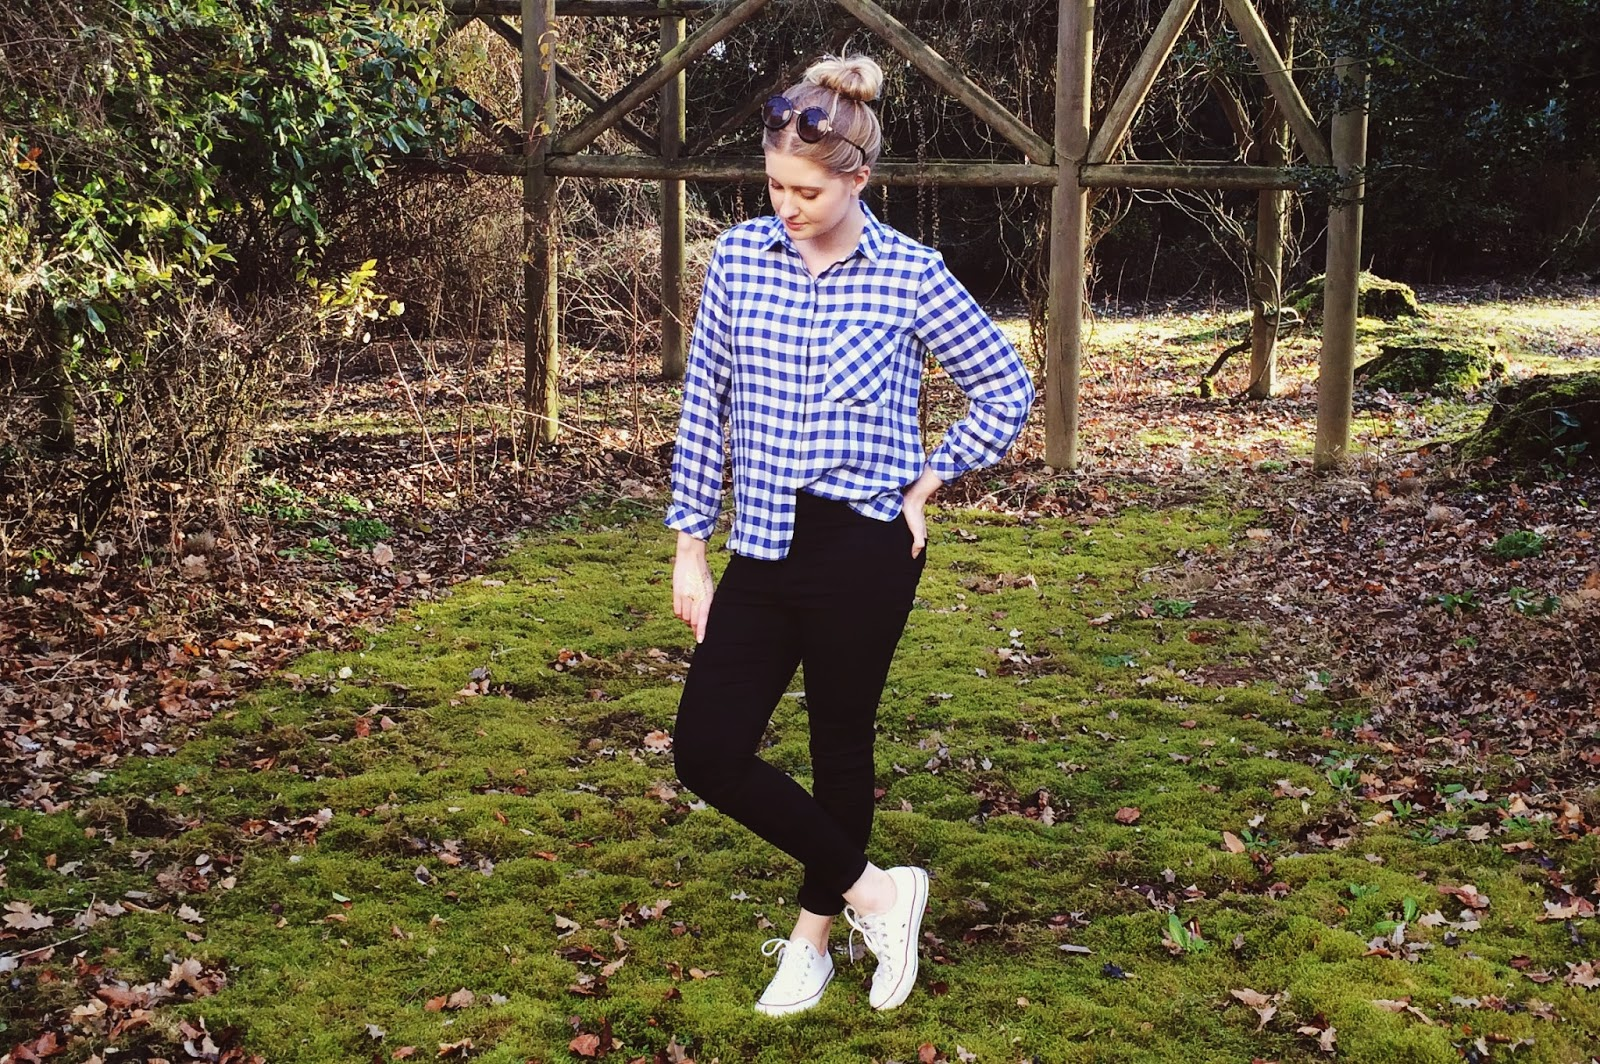 FashionFake, a UK fashion and lifestyle blog. Celebrate Casual Fridays in style with this seasons hit gingham trend! Gingham silk mix shirt from Zara.